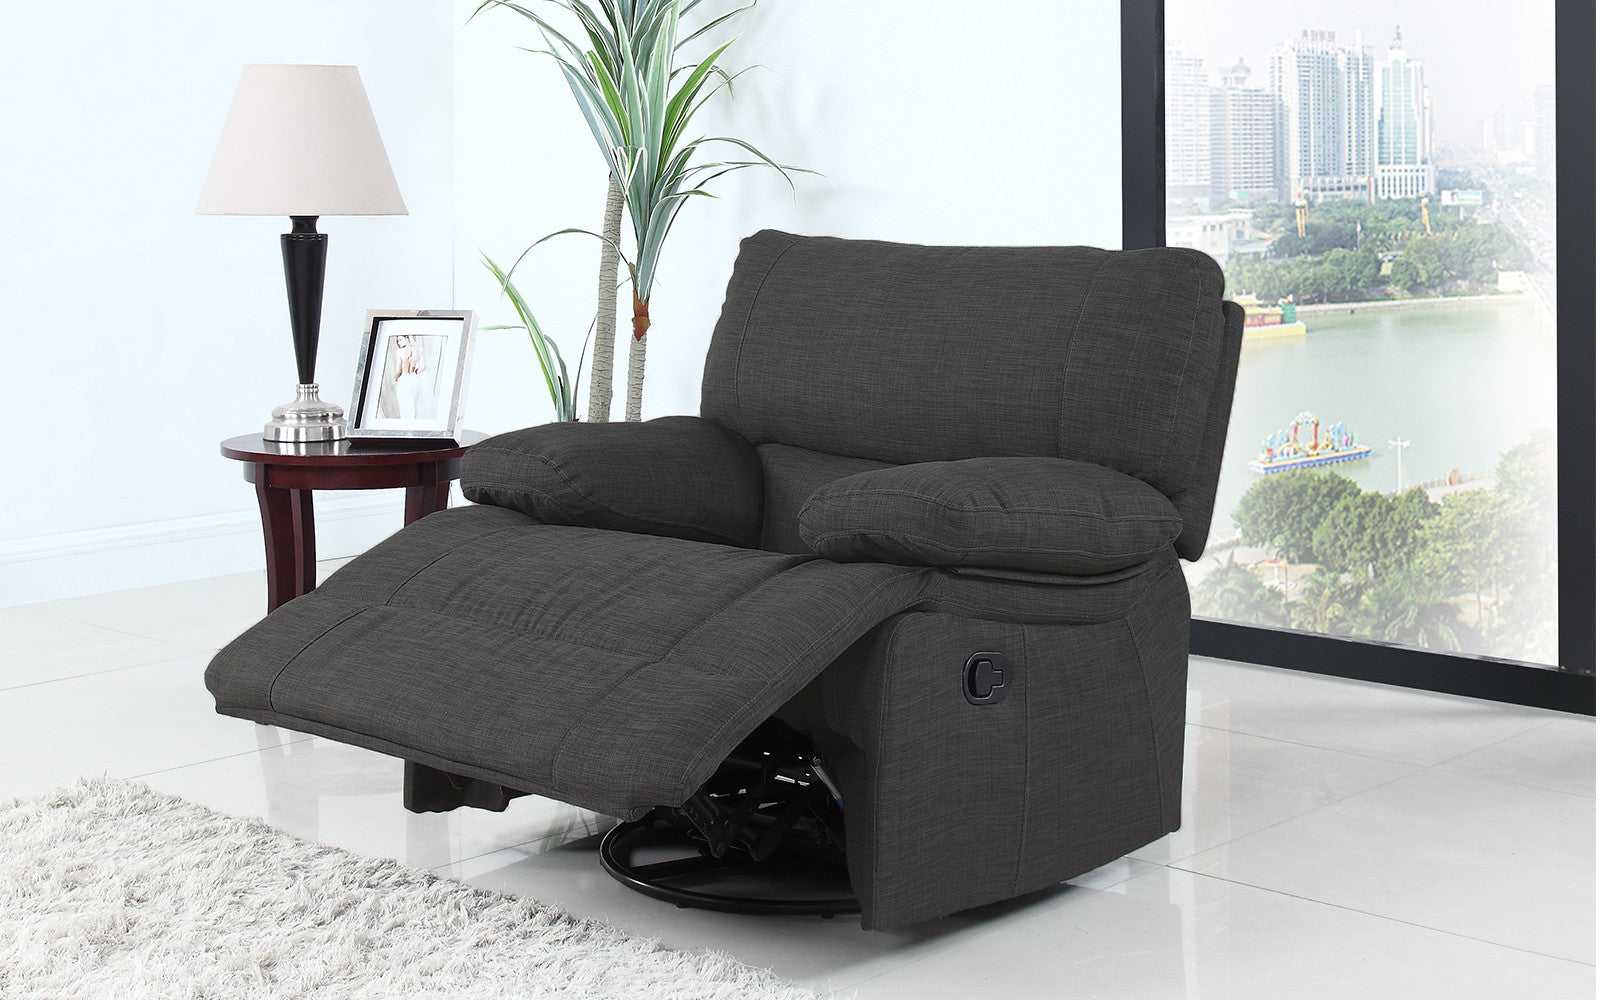 Athens Traditional Fabric Recliner Chair Lifestyle ... & Athens Traditional Fabric Recliner Chair | Sofamania.com islam-shia.org